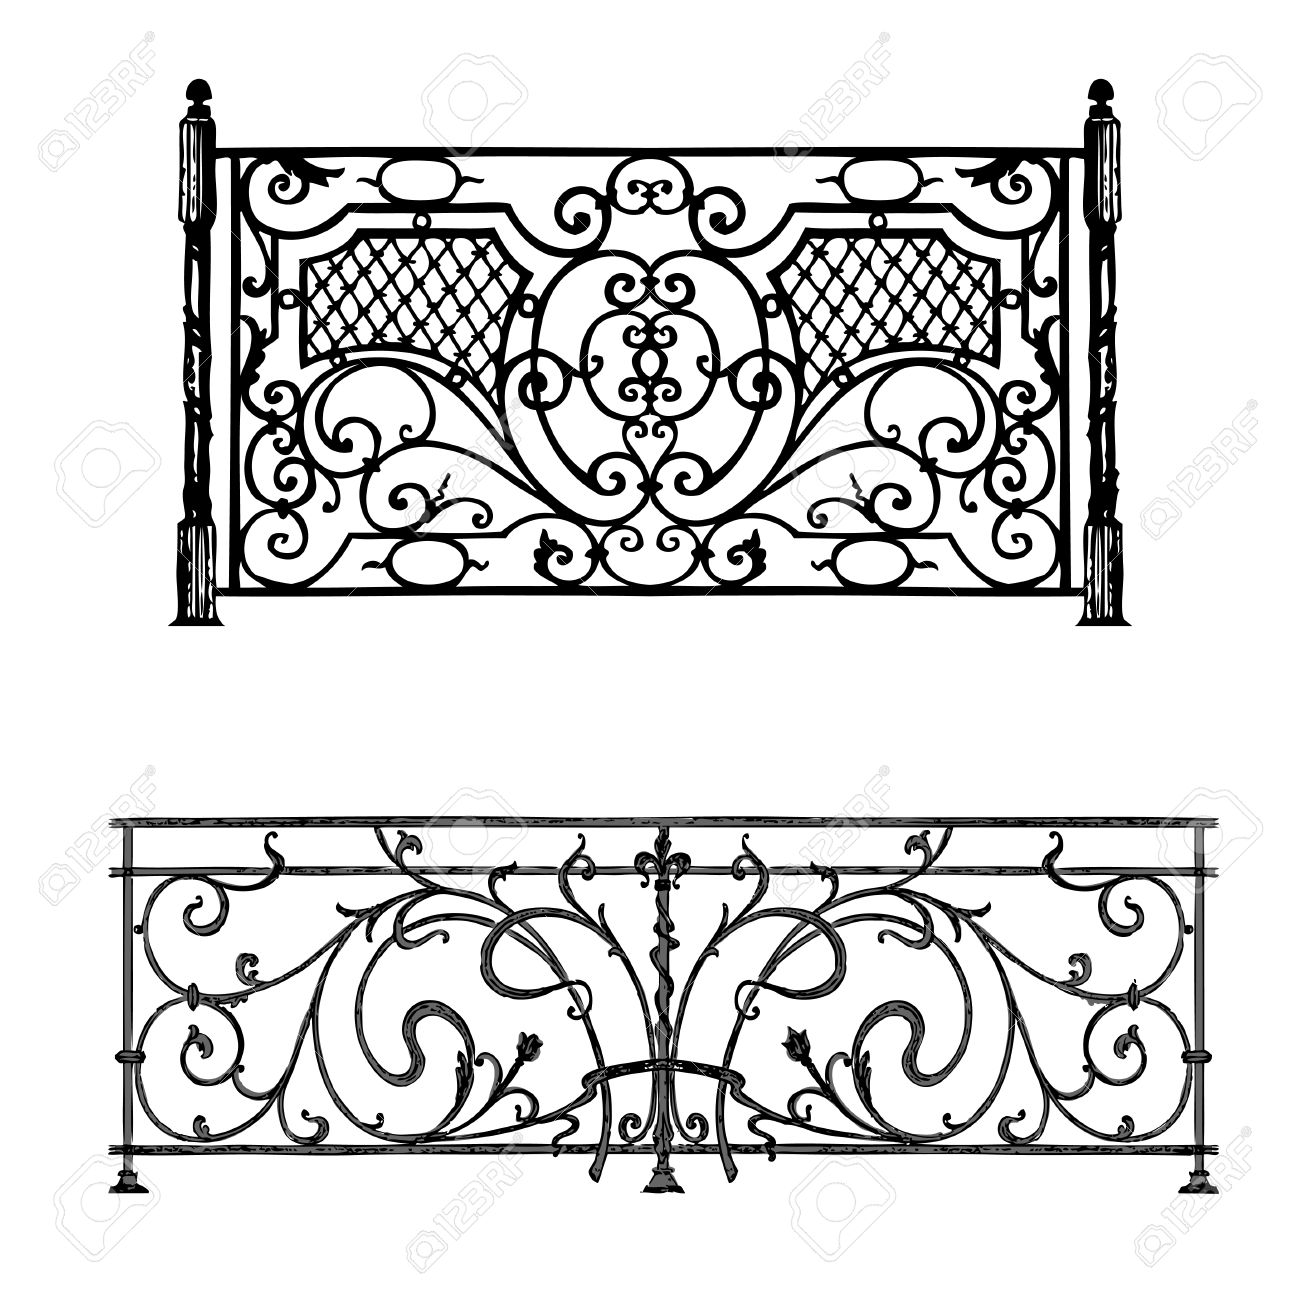 The Artistic Forging Products Lattice Wrought Iron Door, Fence.